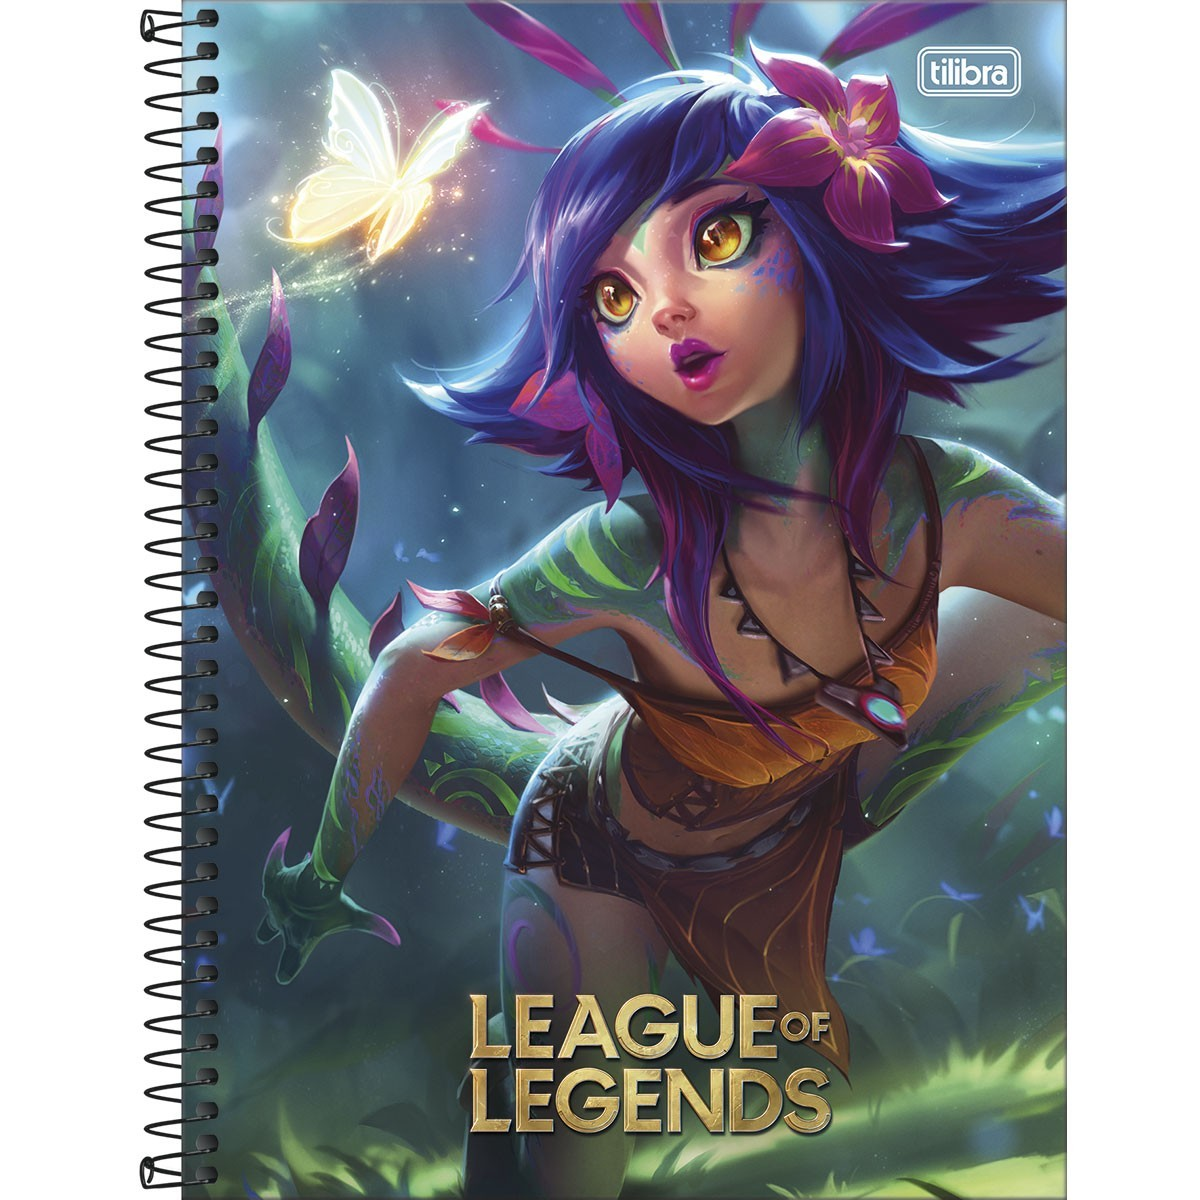 Caderno Espiral Capa Dura Universitário 1 Matéria League of Legends Nekko 80 Folhas